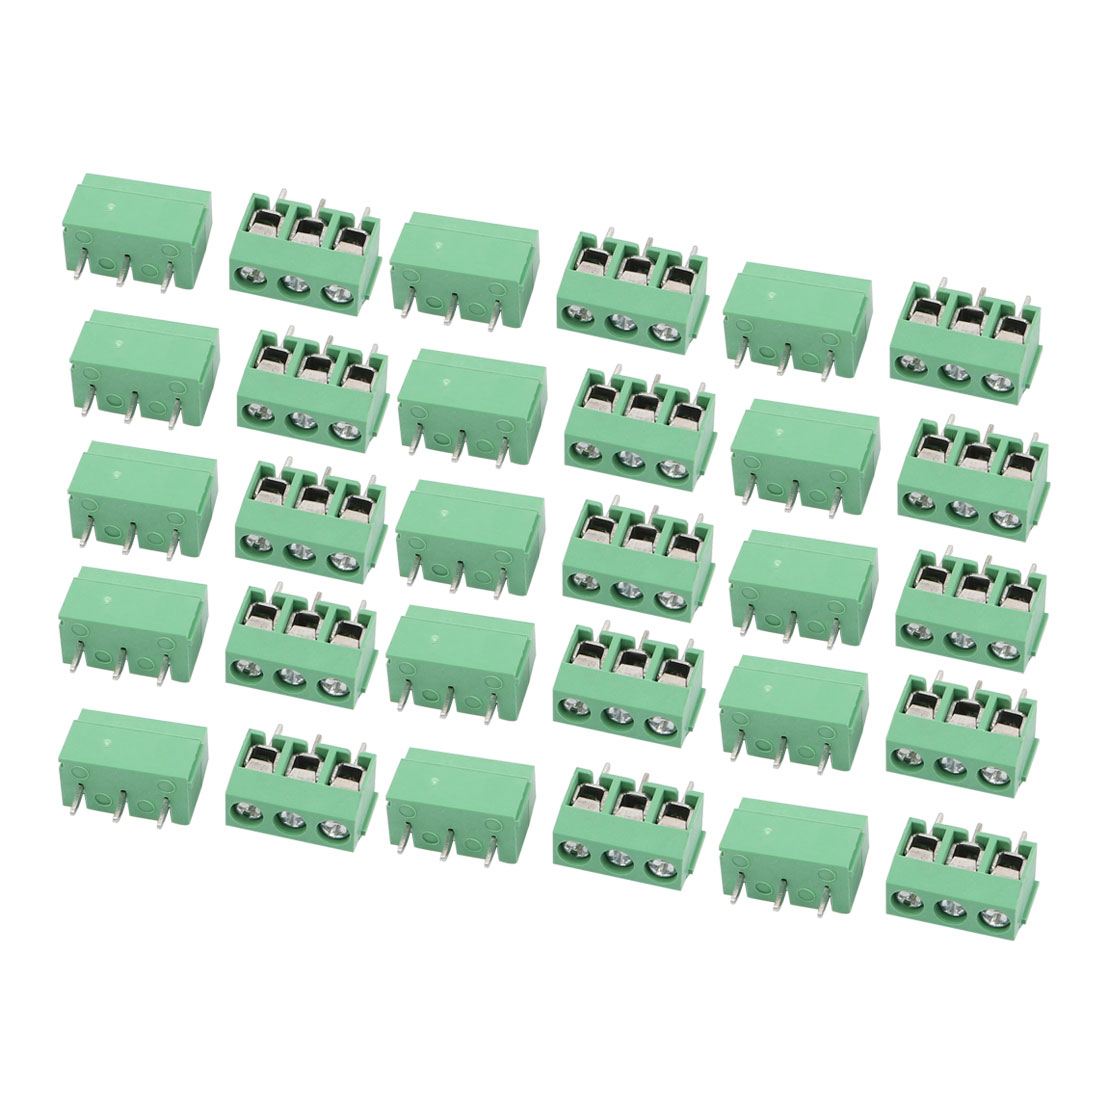 30Pcs AC 300V 10A 5.0mm Pitch 3P Terminal Block PCB Mount Wire Connection